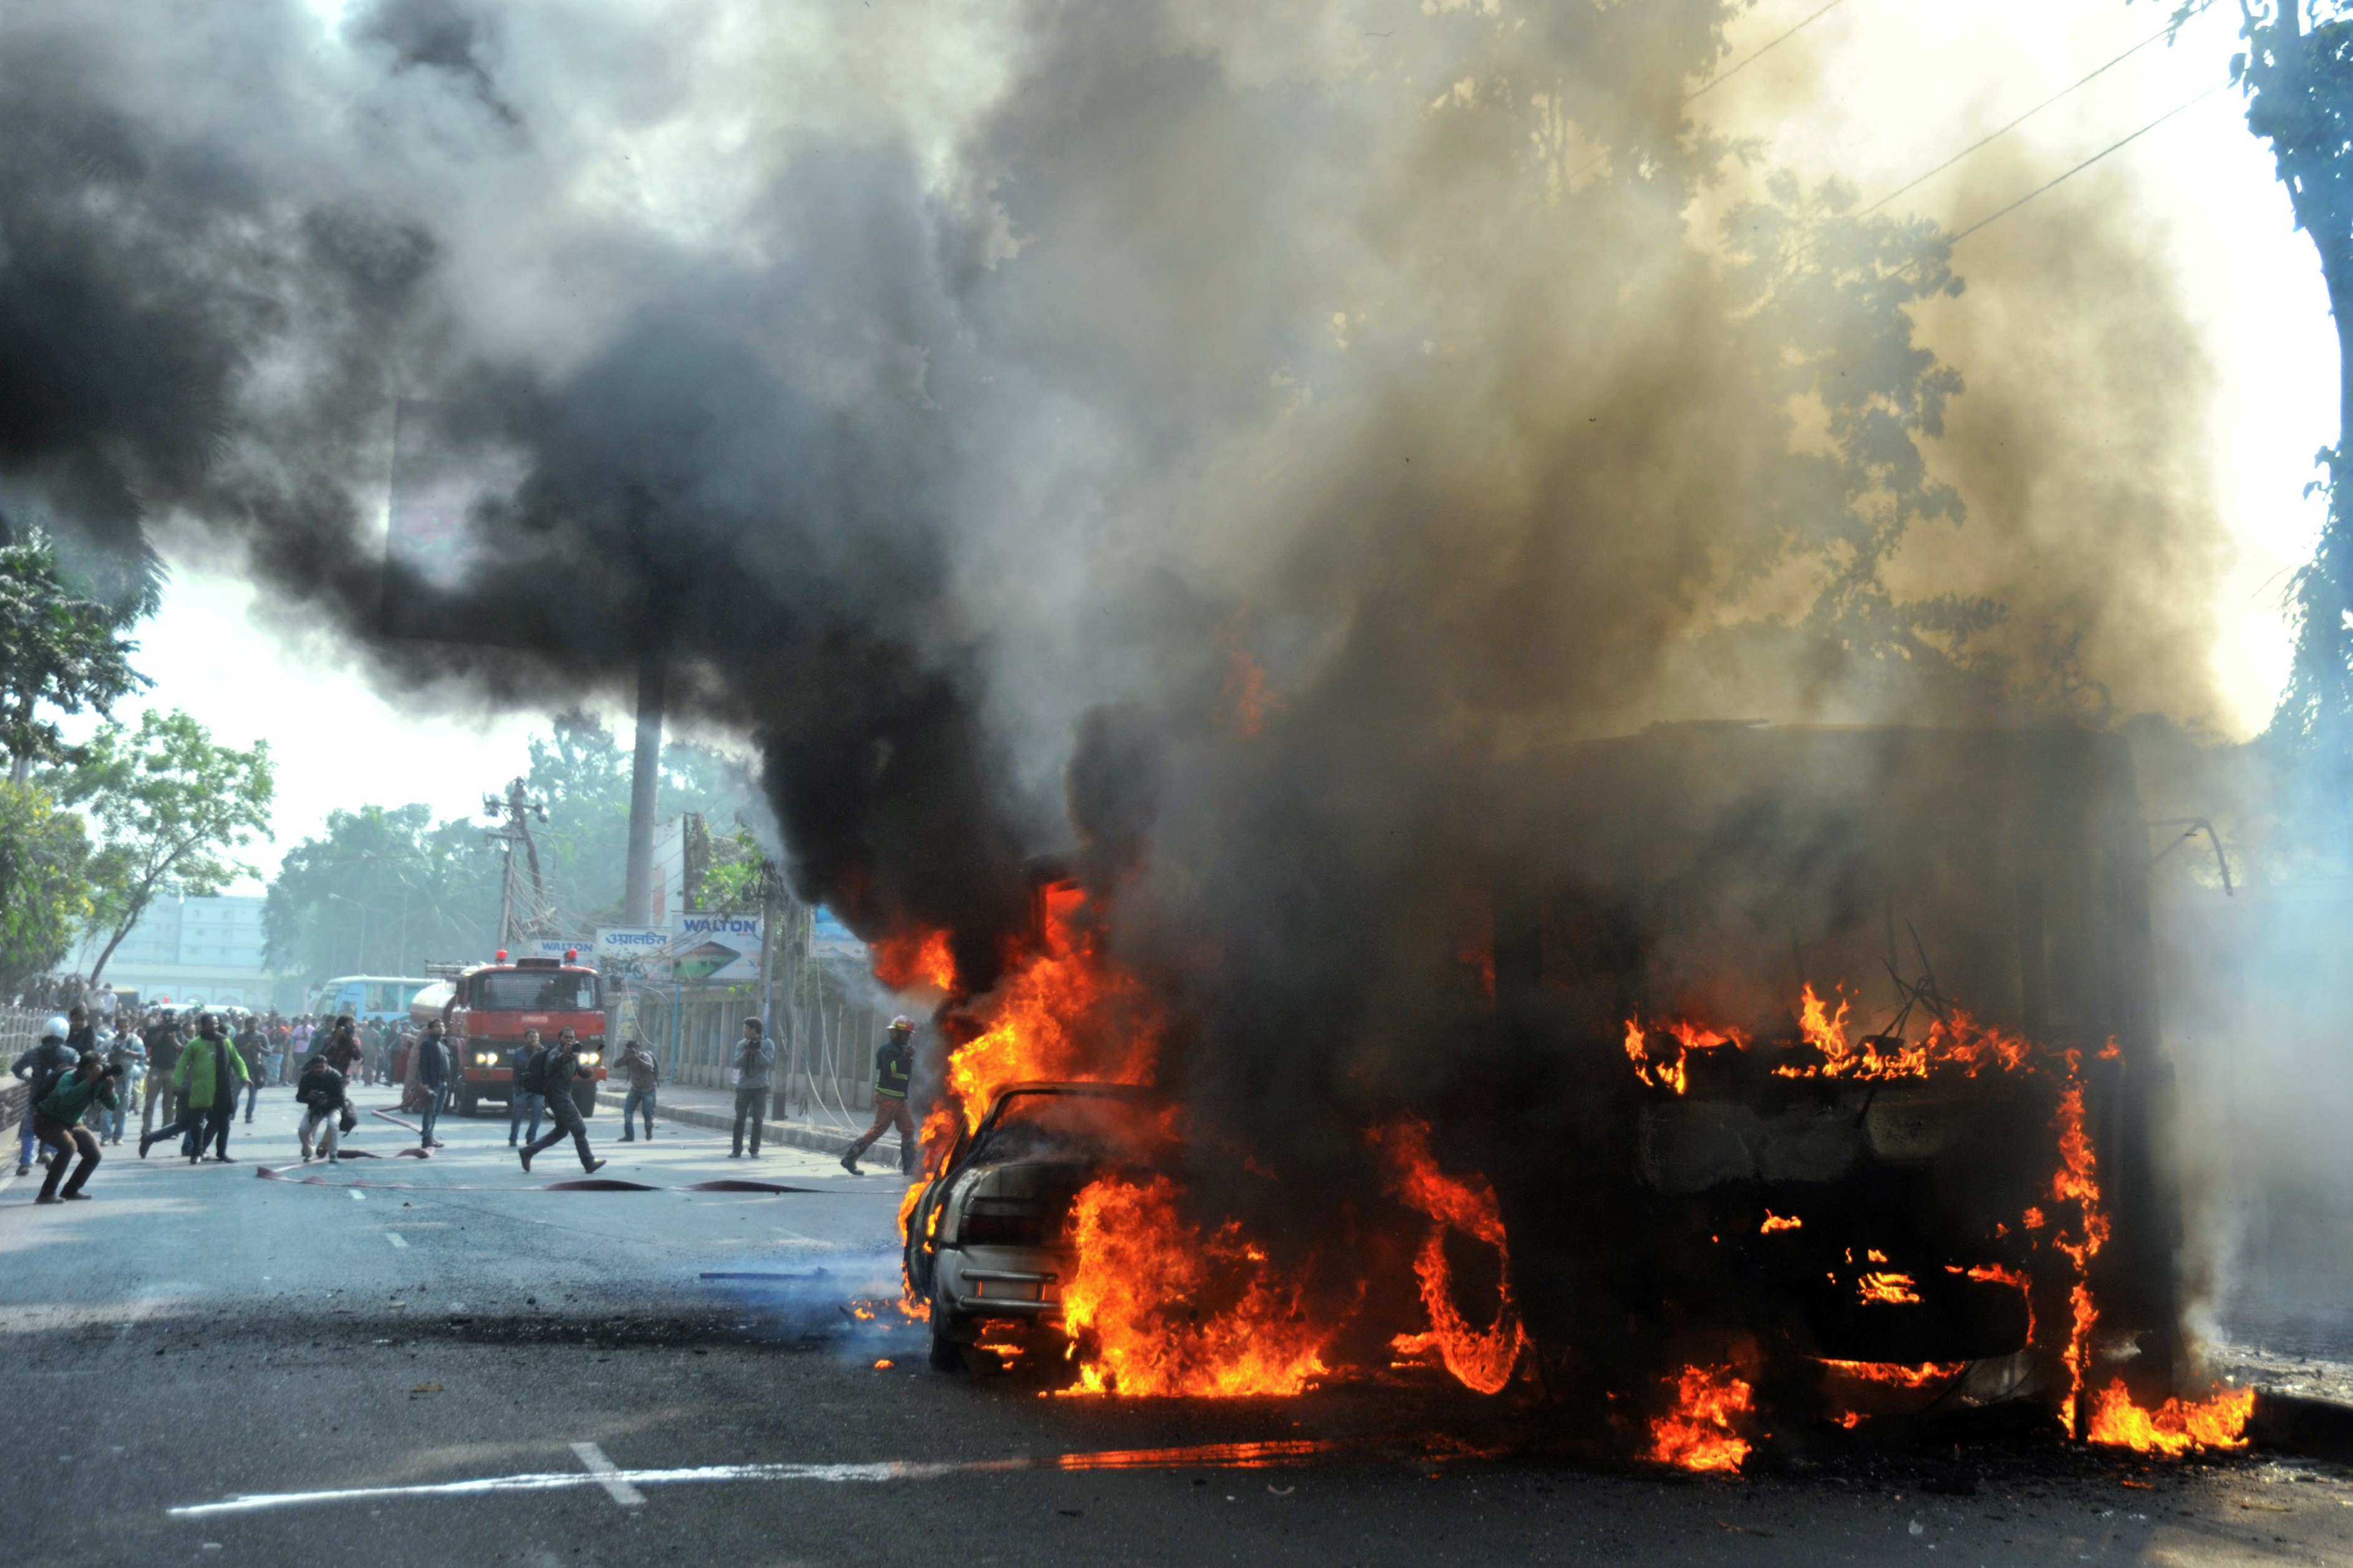 Burning vehicles, set on fire by opposition demonstrators, are pictured during violent protests in Dhaka, Bangladesh, on Jan. 6, 2015